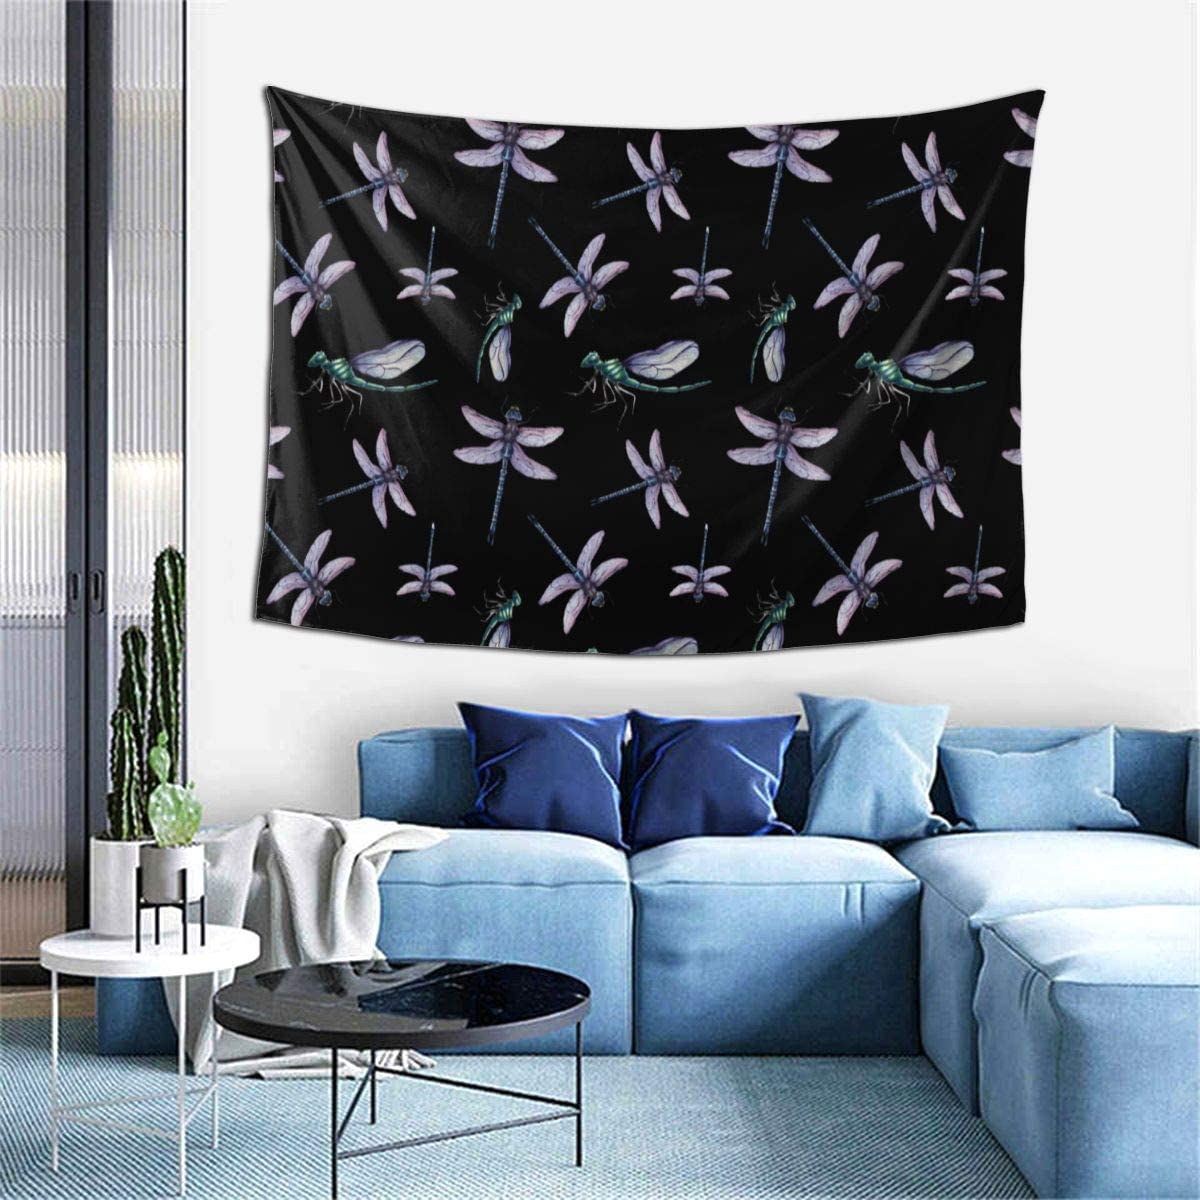 NiYoung Wall Hanging Tapestry Wall Hanging Home Decor Tapestry for Apartment, Kitchen, Bathroom, College Dorm Wall Tapestry Watercolor Dragonfly Pattern Tapestry